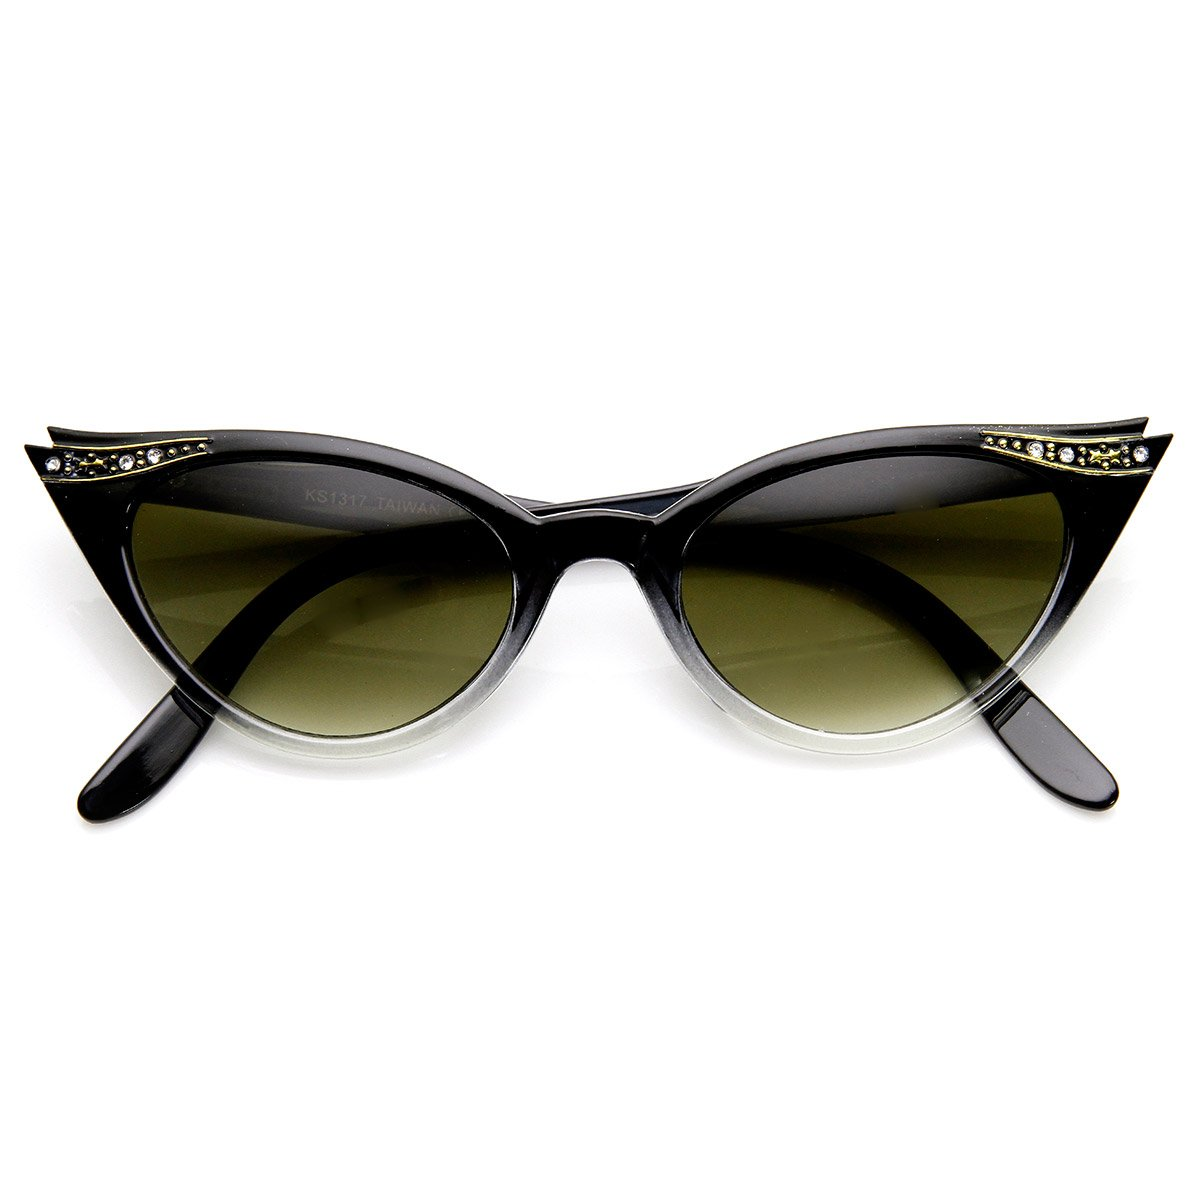 zeroUV - Vintage Inspired Mod Womens Fashion Rhinestone Cat Eye Sunglasses 0